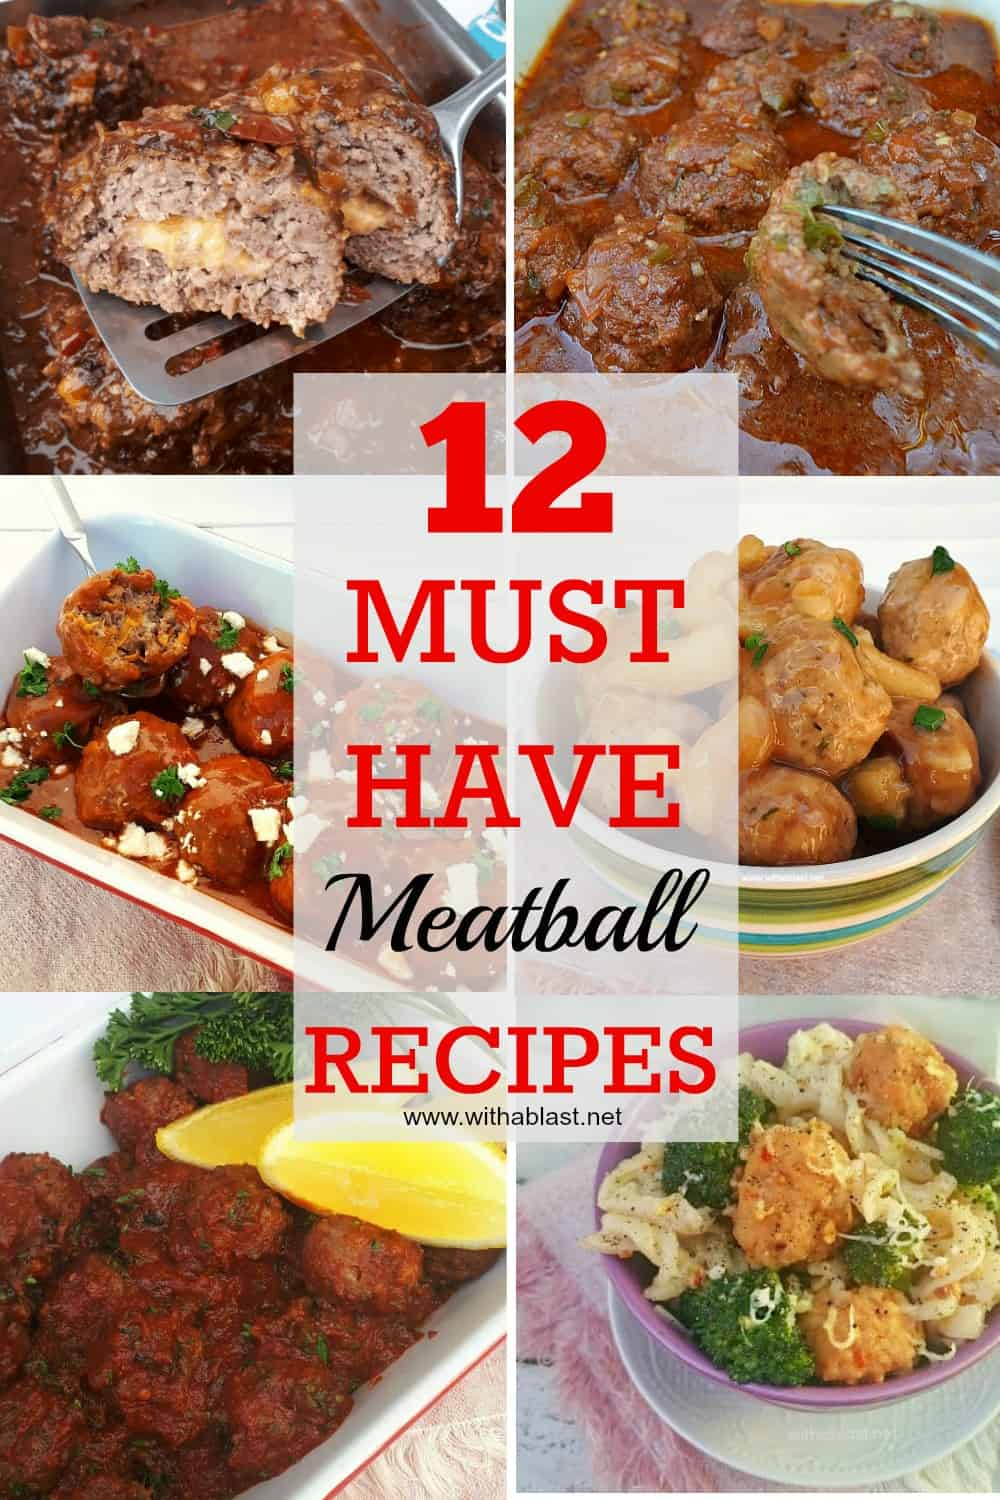 Check out these Meatball Recipes ! So perfect to serve throughout all the seasons. Most recipes can be served as not only a main meal but as an appetizer as well